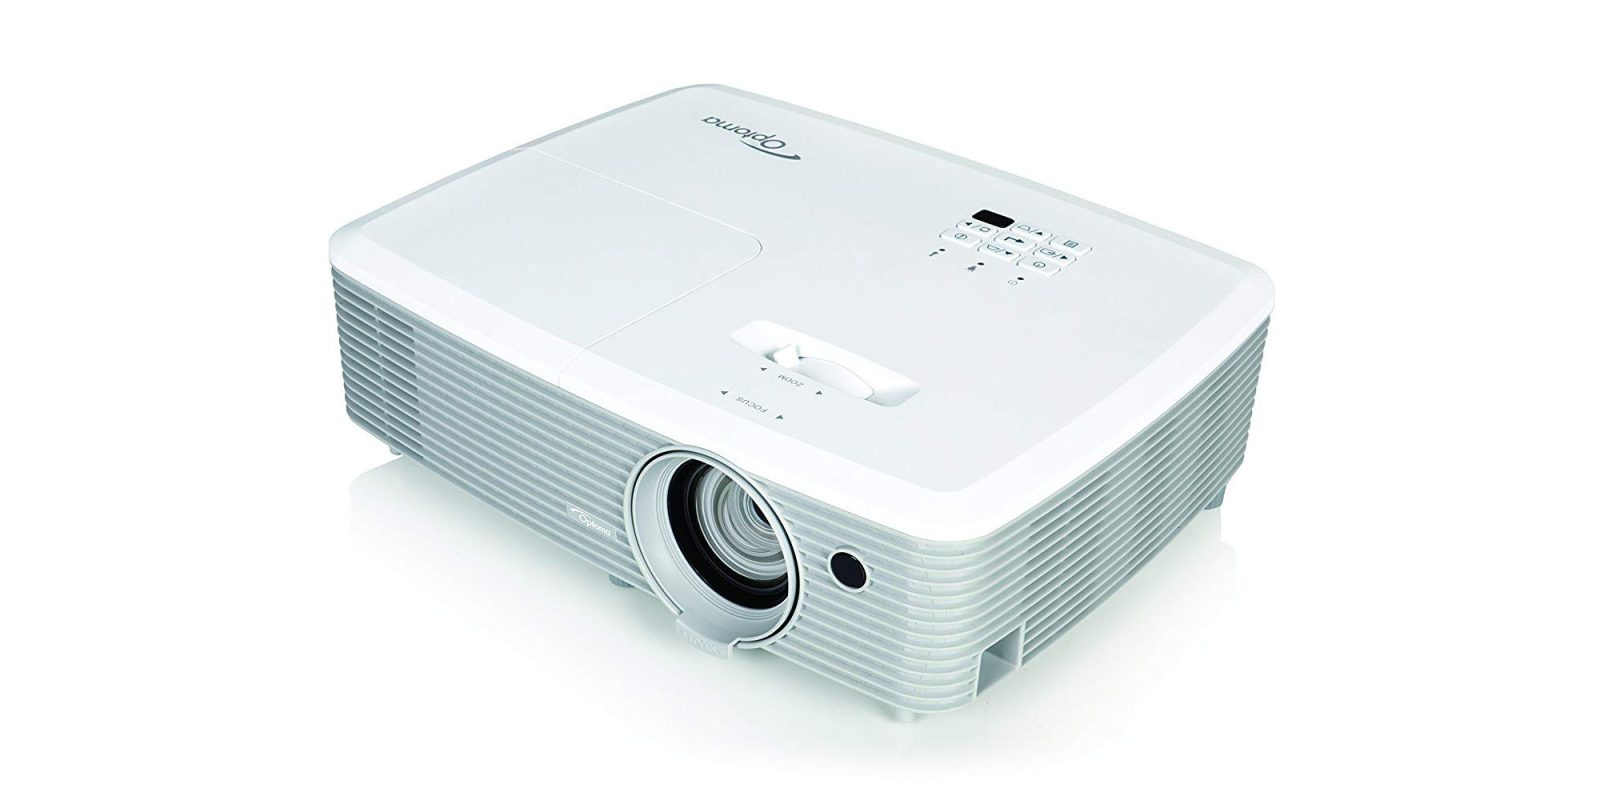 Optoma's 720p+ Widescreen Projector hits $290 (Refurb, Orig. $450), more